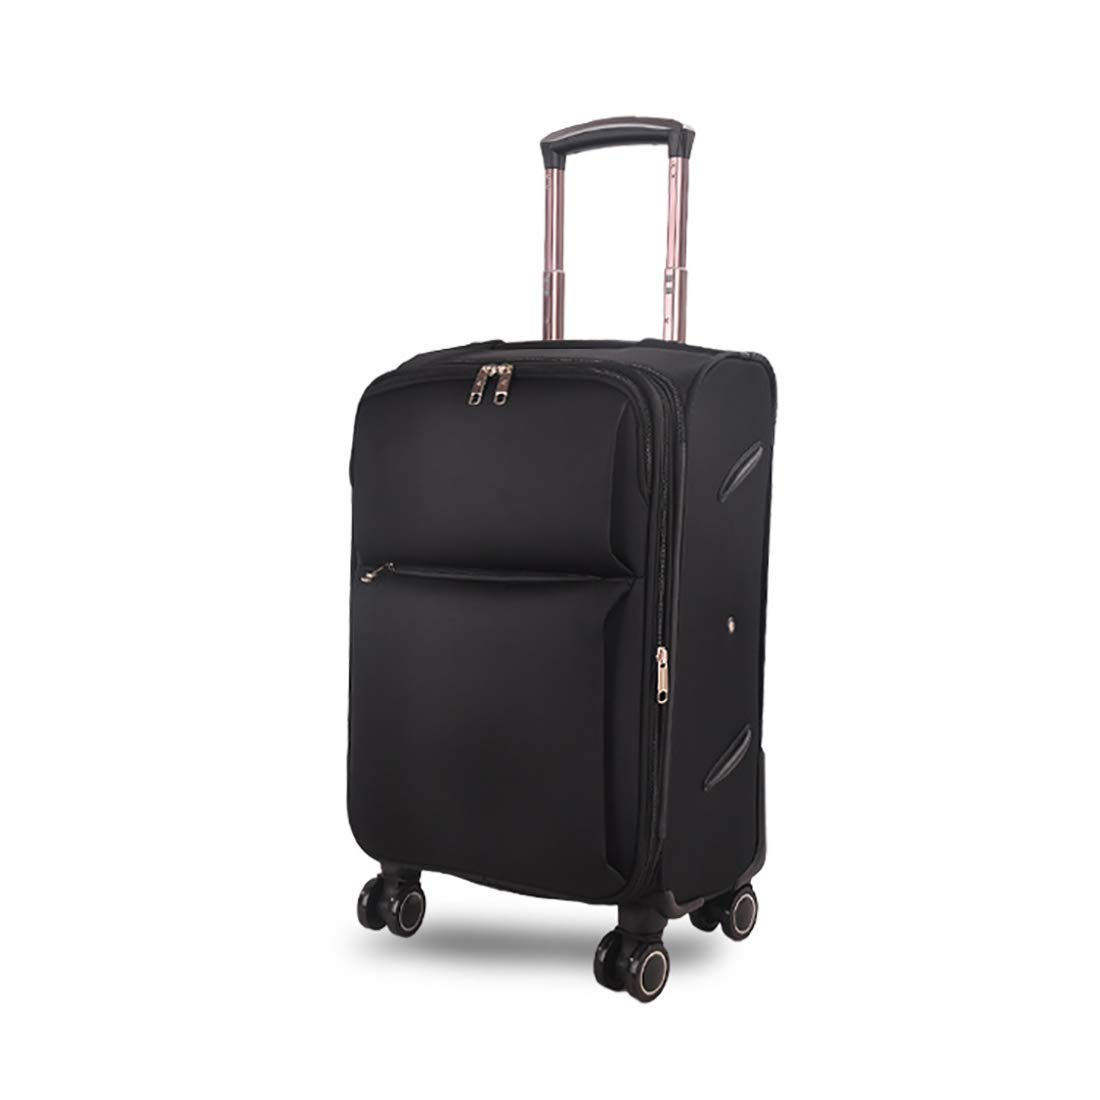 60019f3a4229 Amazon.com: Wetietir Luggage Suitcase Fashion Luggage, Universal ...